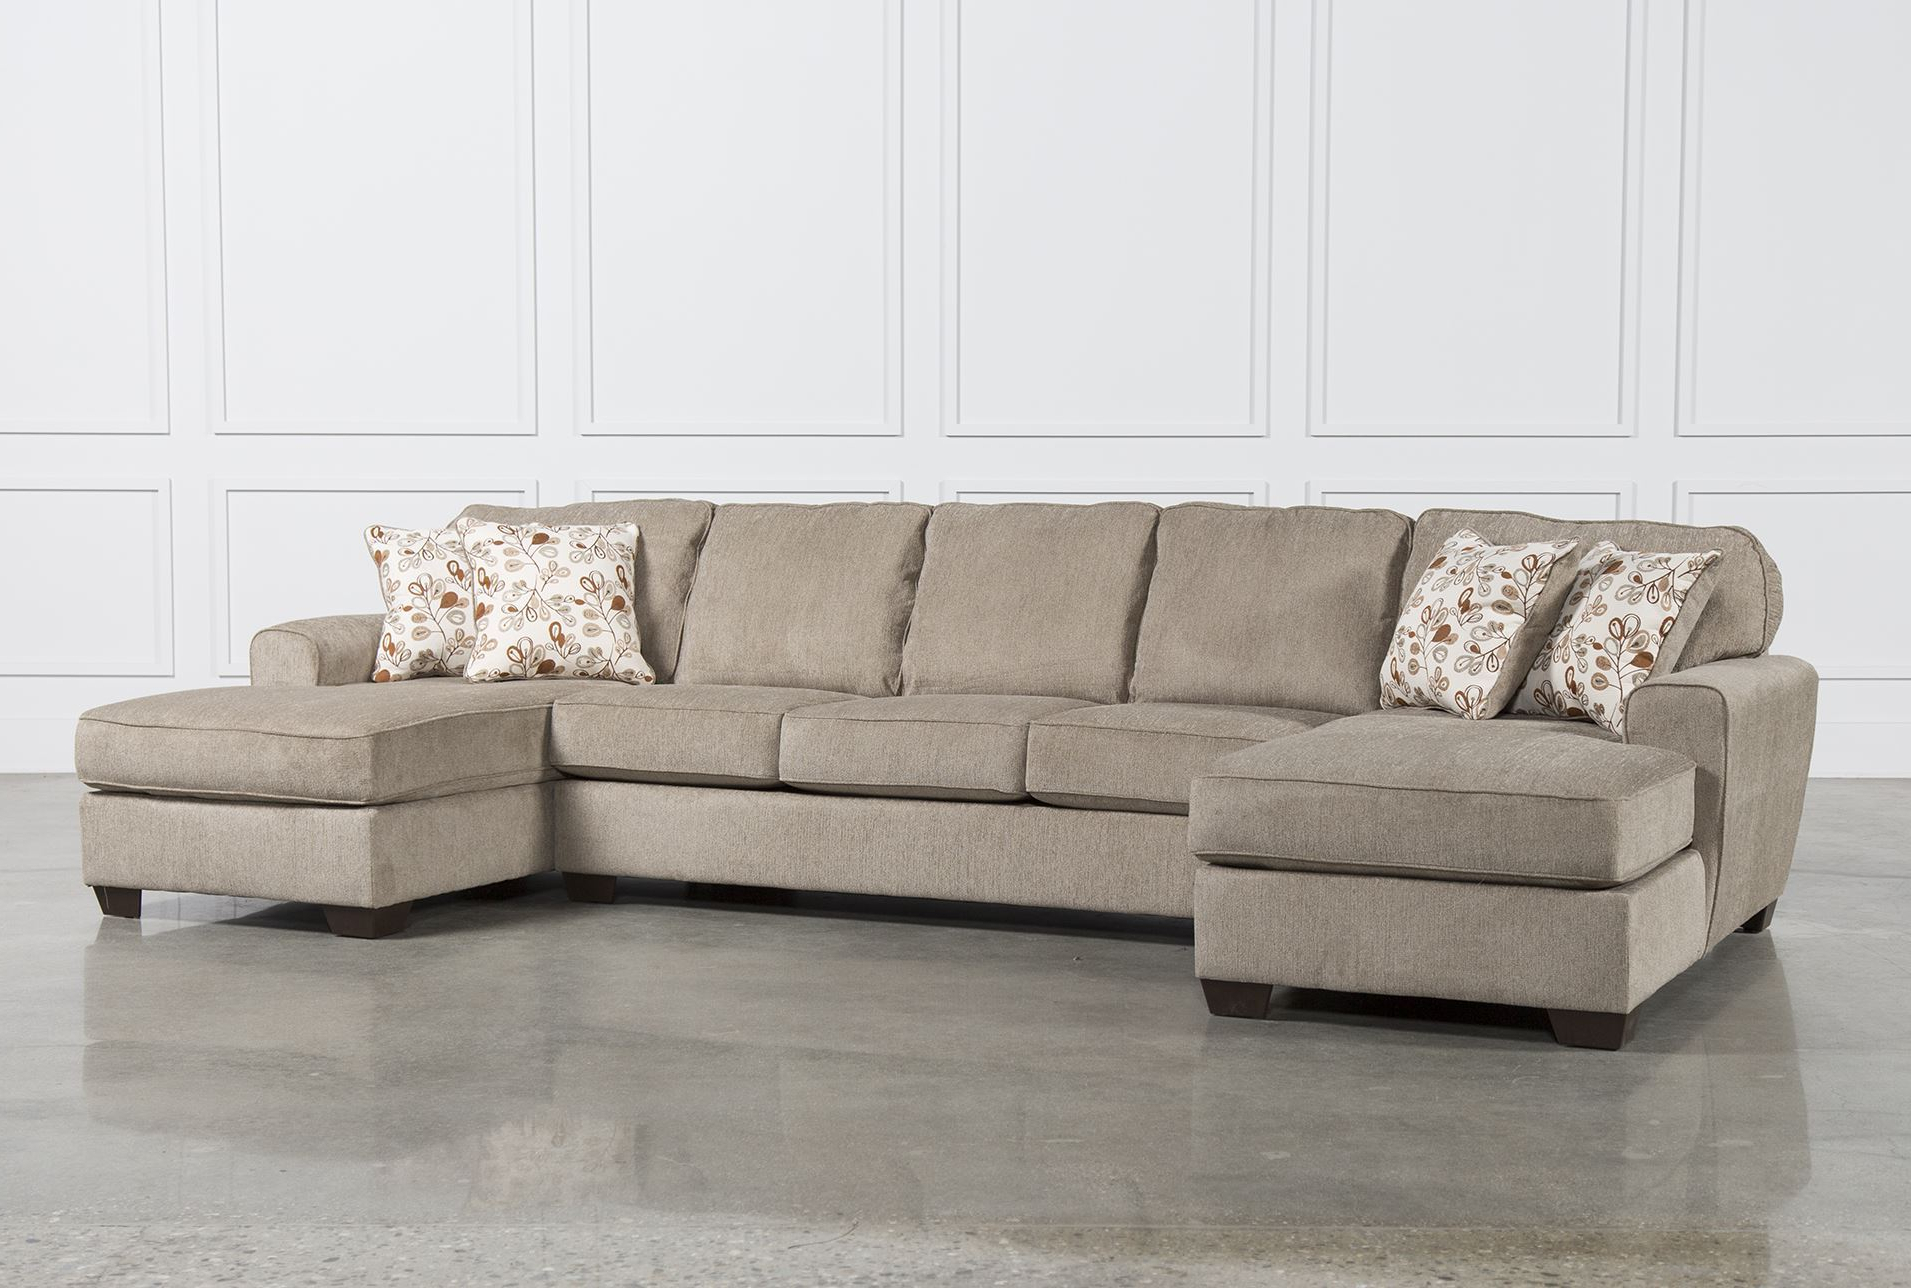 Most Popular Living Spaces Small Sectional Sofas – Sofa Design Ideas Inside Avery 2 Piece Sectionals With Raf Armless Chaise (View 8 of 20)